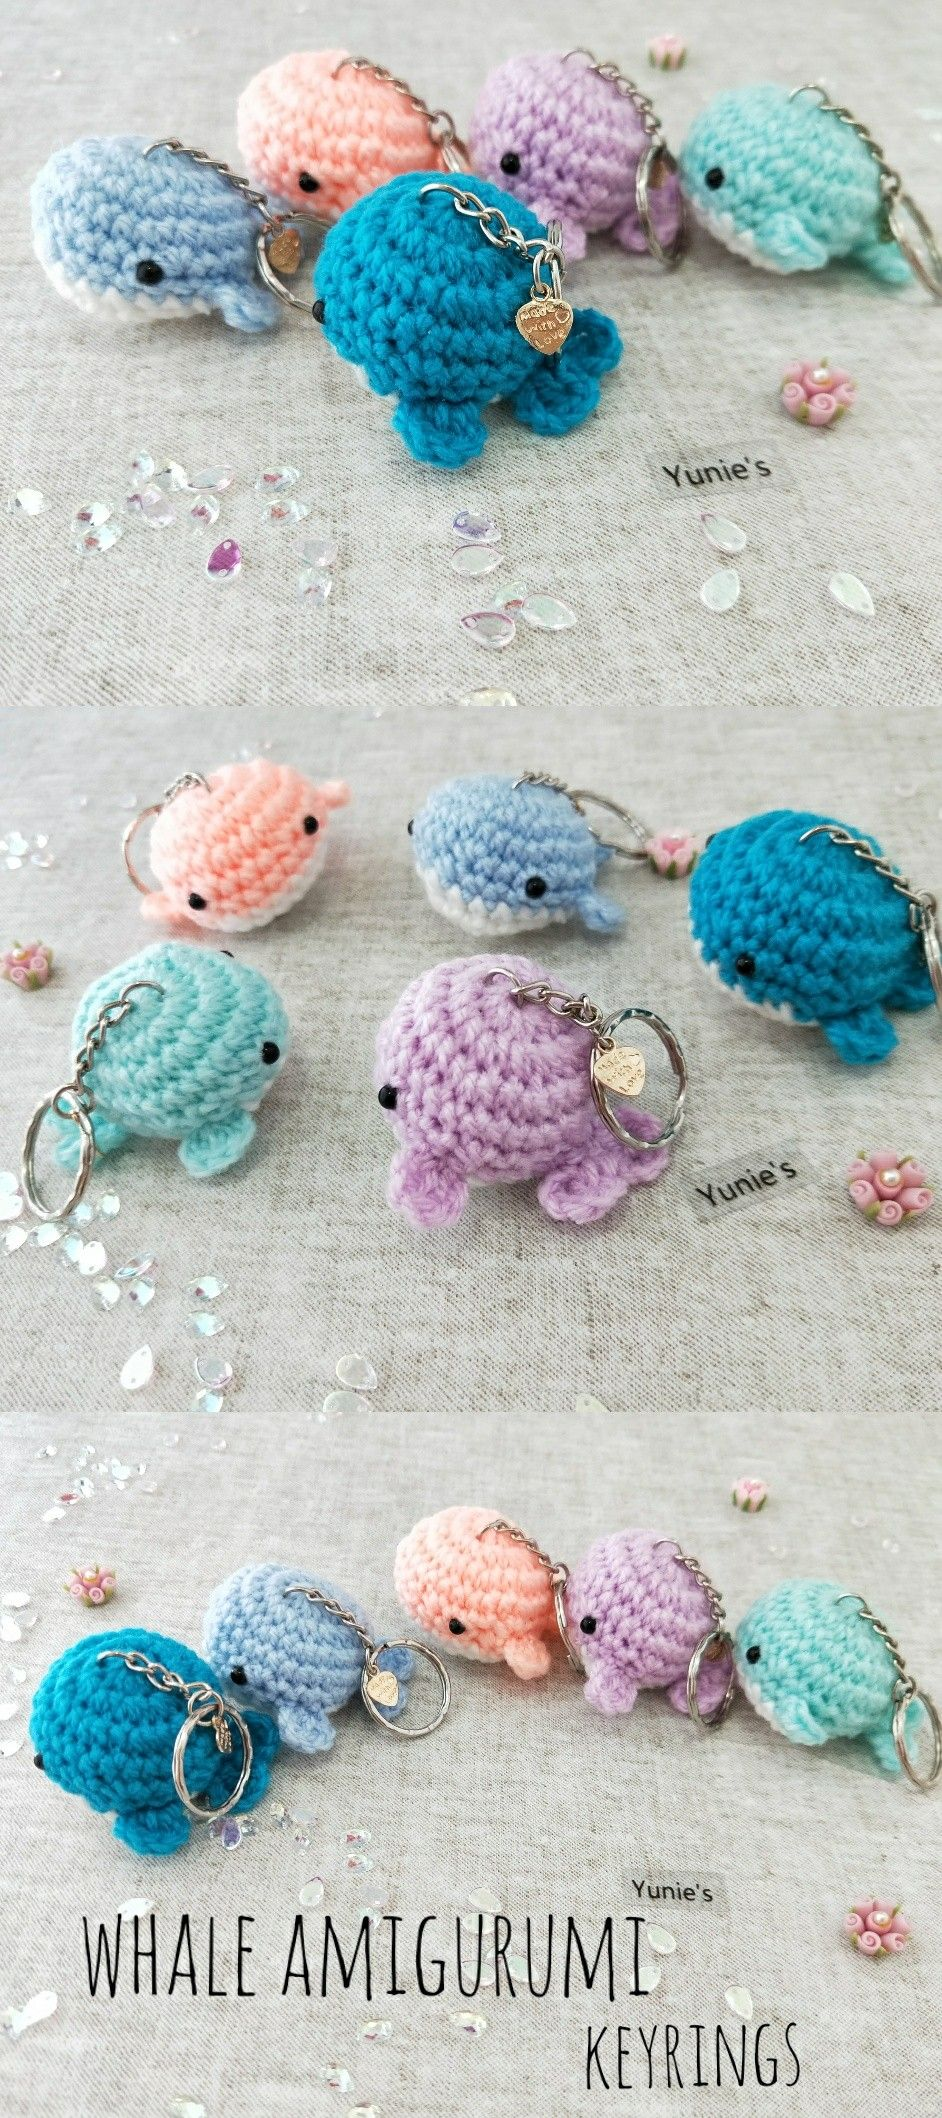 Whale amigurumi keyrings | CROCHET IDEAS | Pinterest | Ganchillo ...